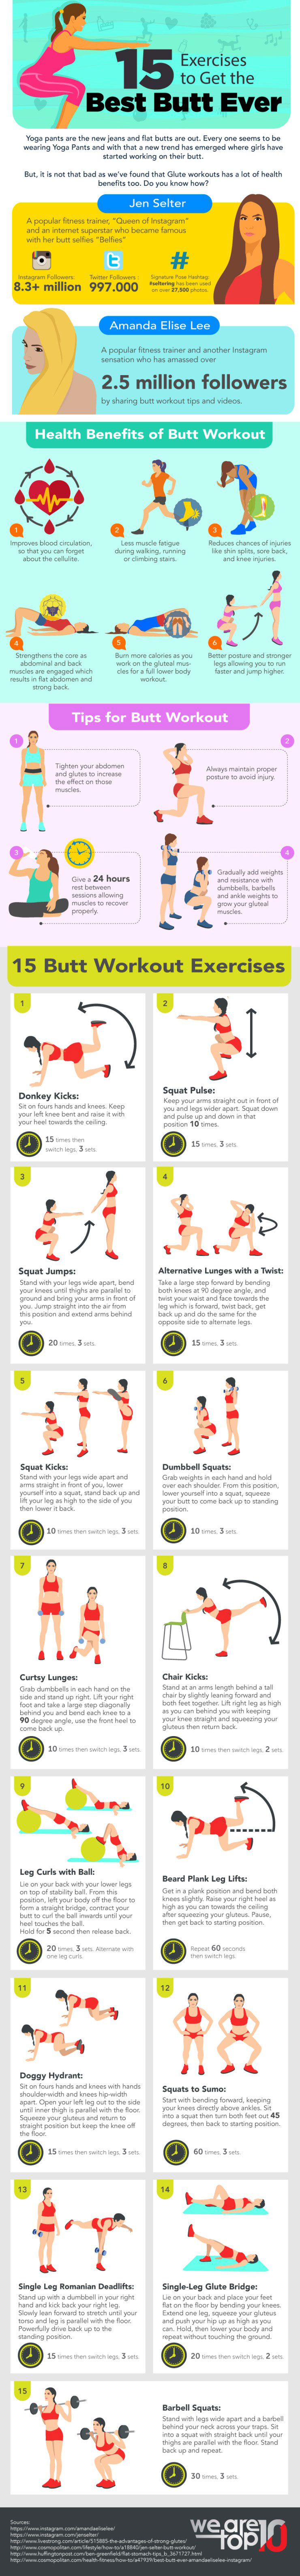 butt-exercises-infographic